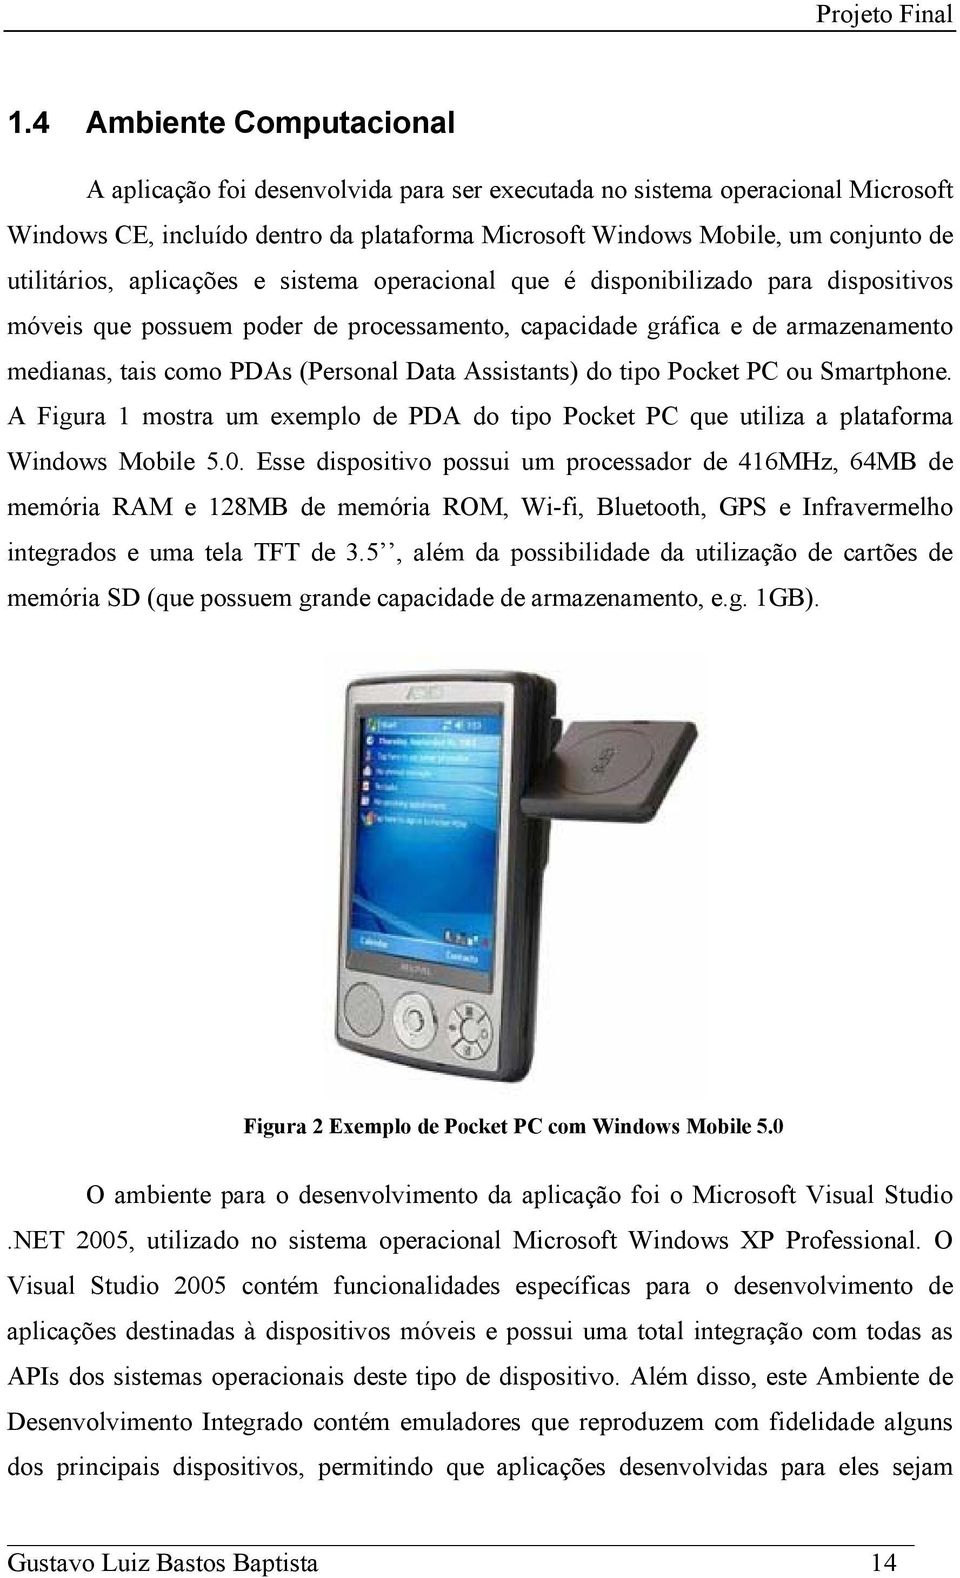 (Personal Data Assistants) do tipo Pocket PC ou Smartphone. A Figura 1 mostra um exemplo de PDA do tipo Pocket PC que utiliza a plataforma Windows Mobile 5.0.